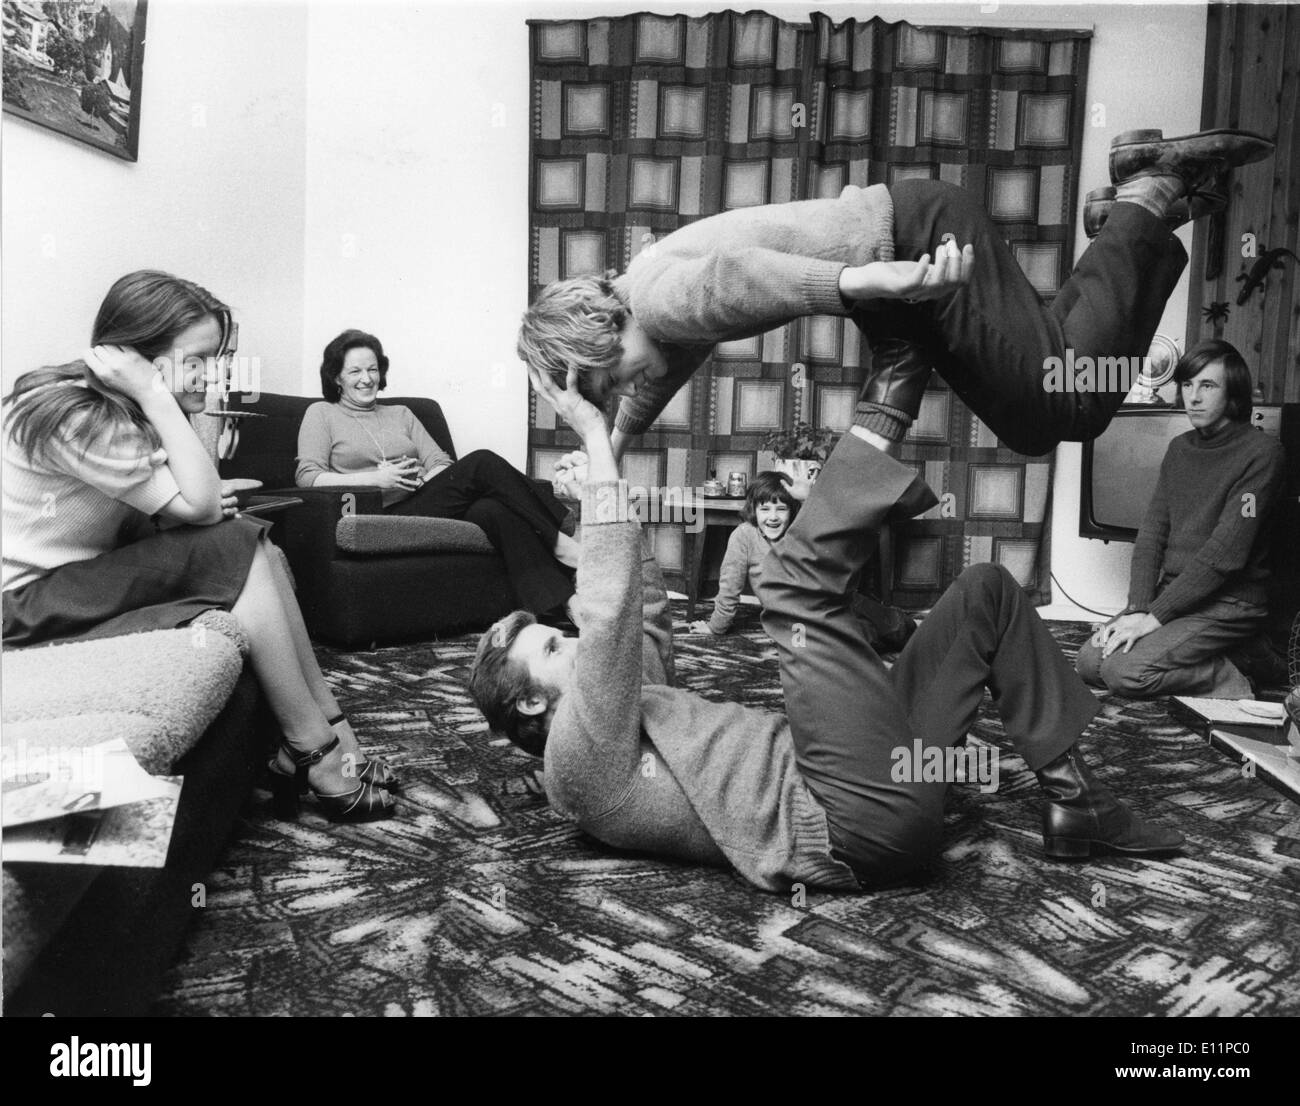 May 23, 1979 - Sunderland - Stunt doubles TERRY and DENNIS CAMSEY perform a trick for their family in their homes living room. - Stock Image